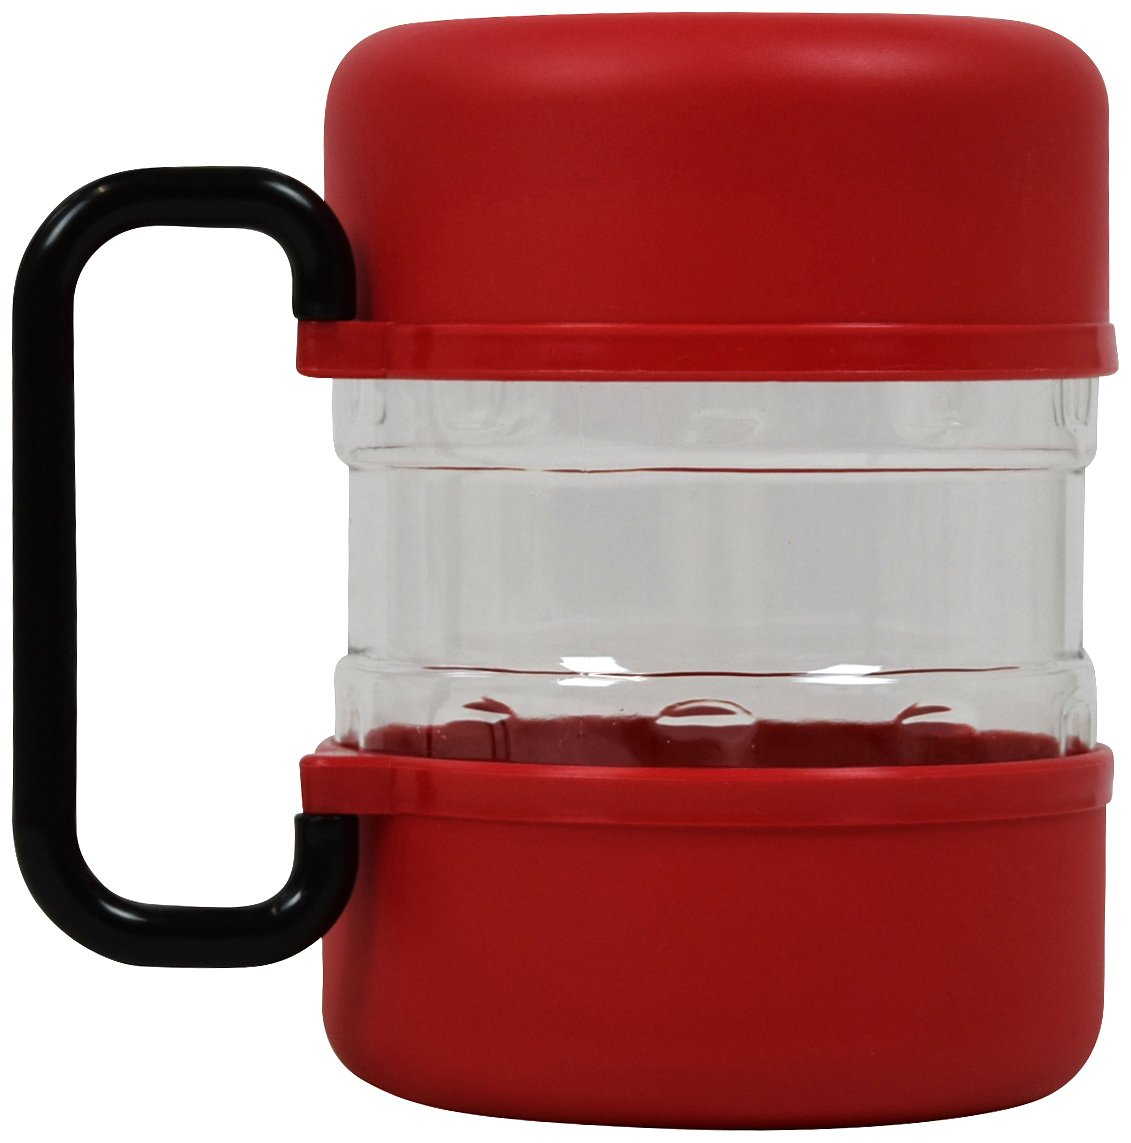 (Red) PET Life Travel Dog Food Container with Detachable Travel Dog Bowls